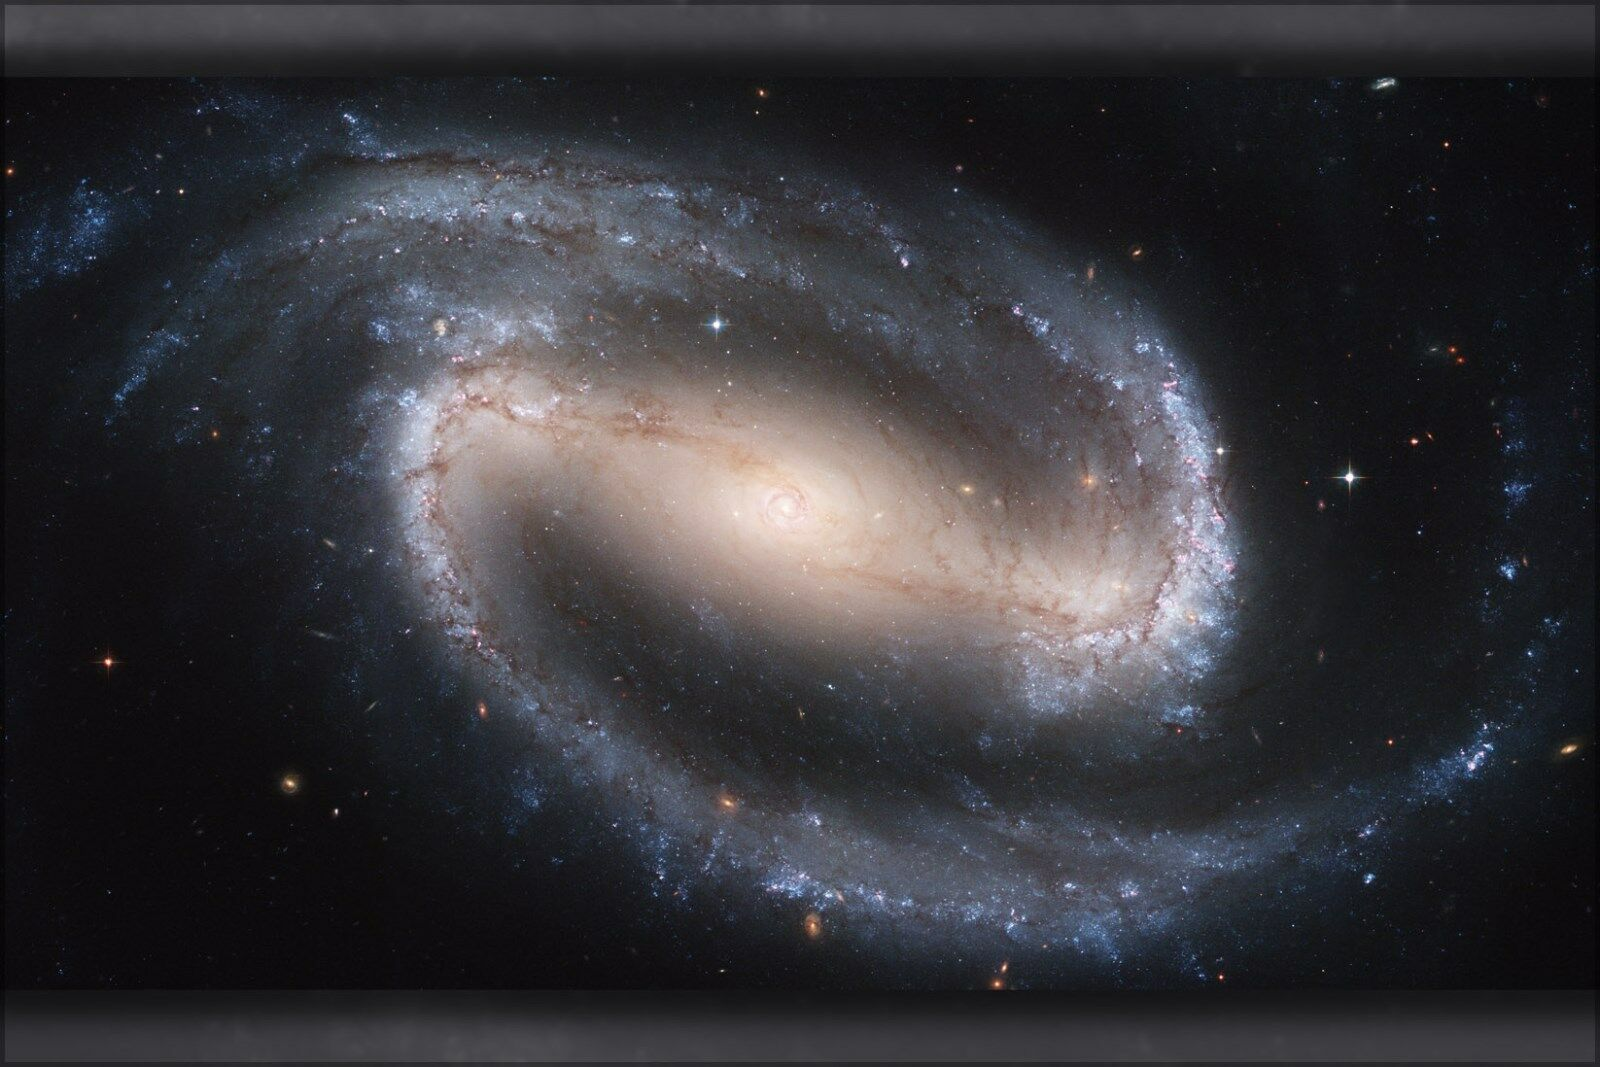 Poster, Many Größes; Ngc 1300, Barrot Spiral Galaxy Hubble Space Telescope Image